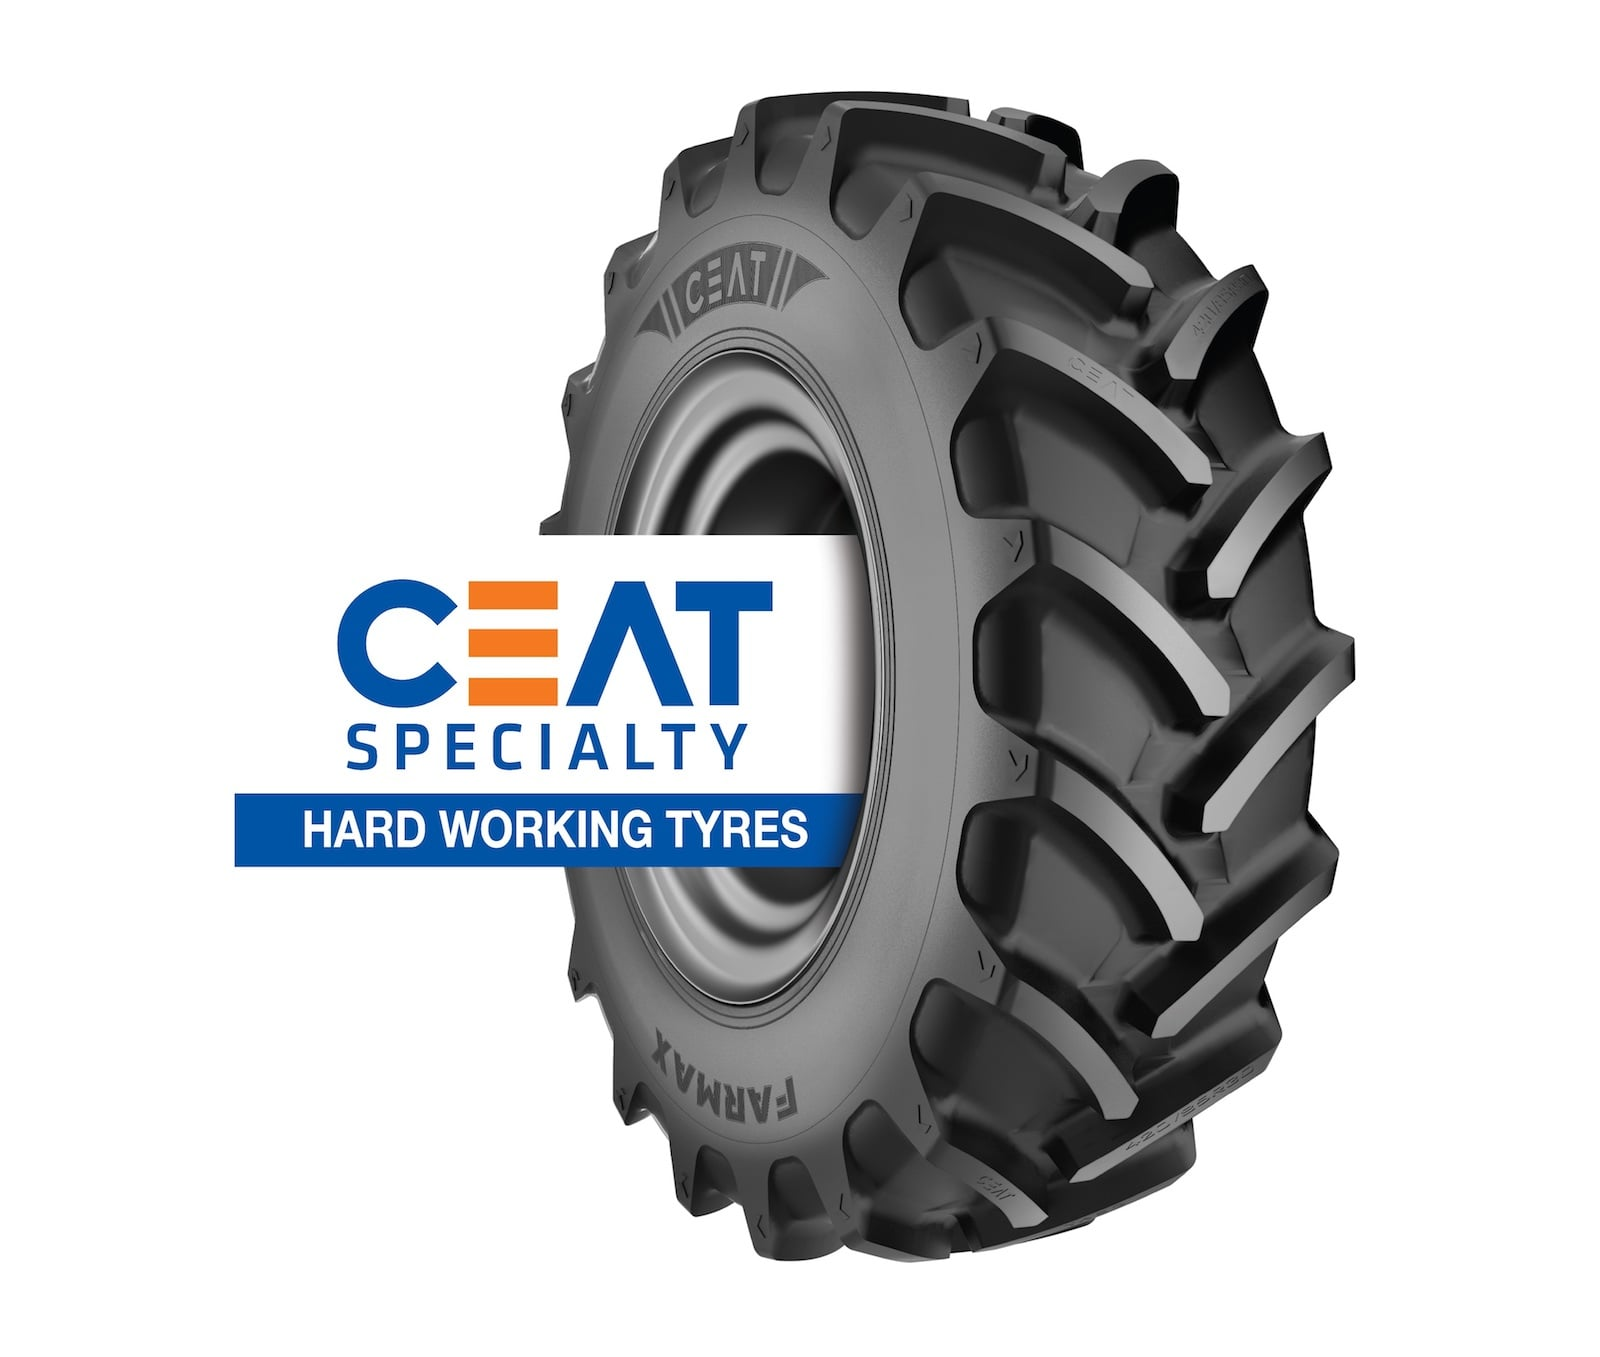 CEAT Agricultural Tyres